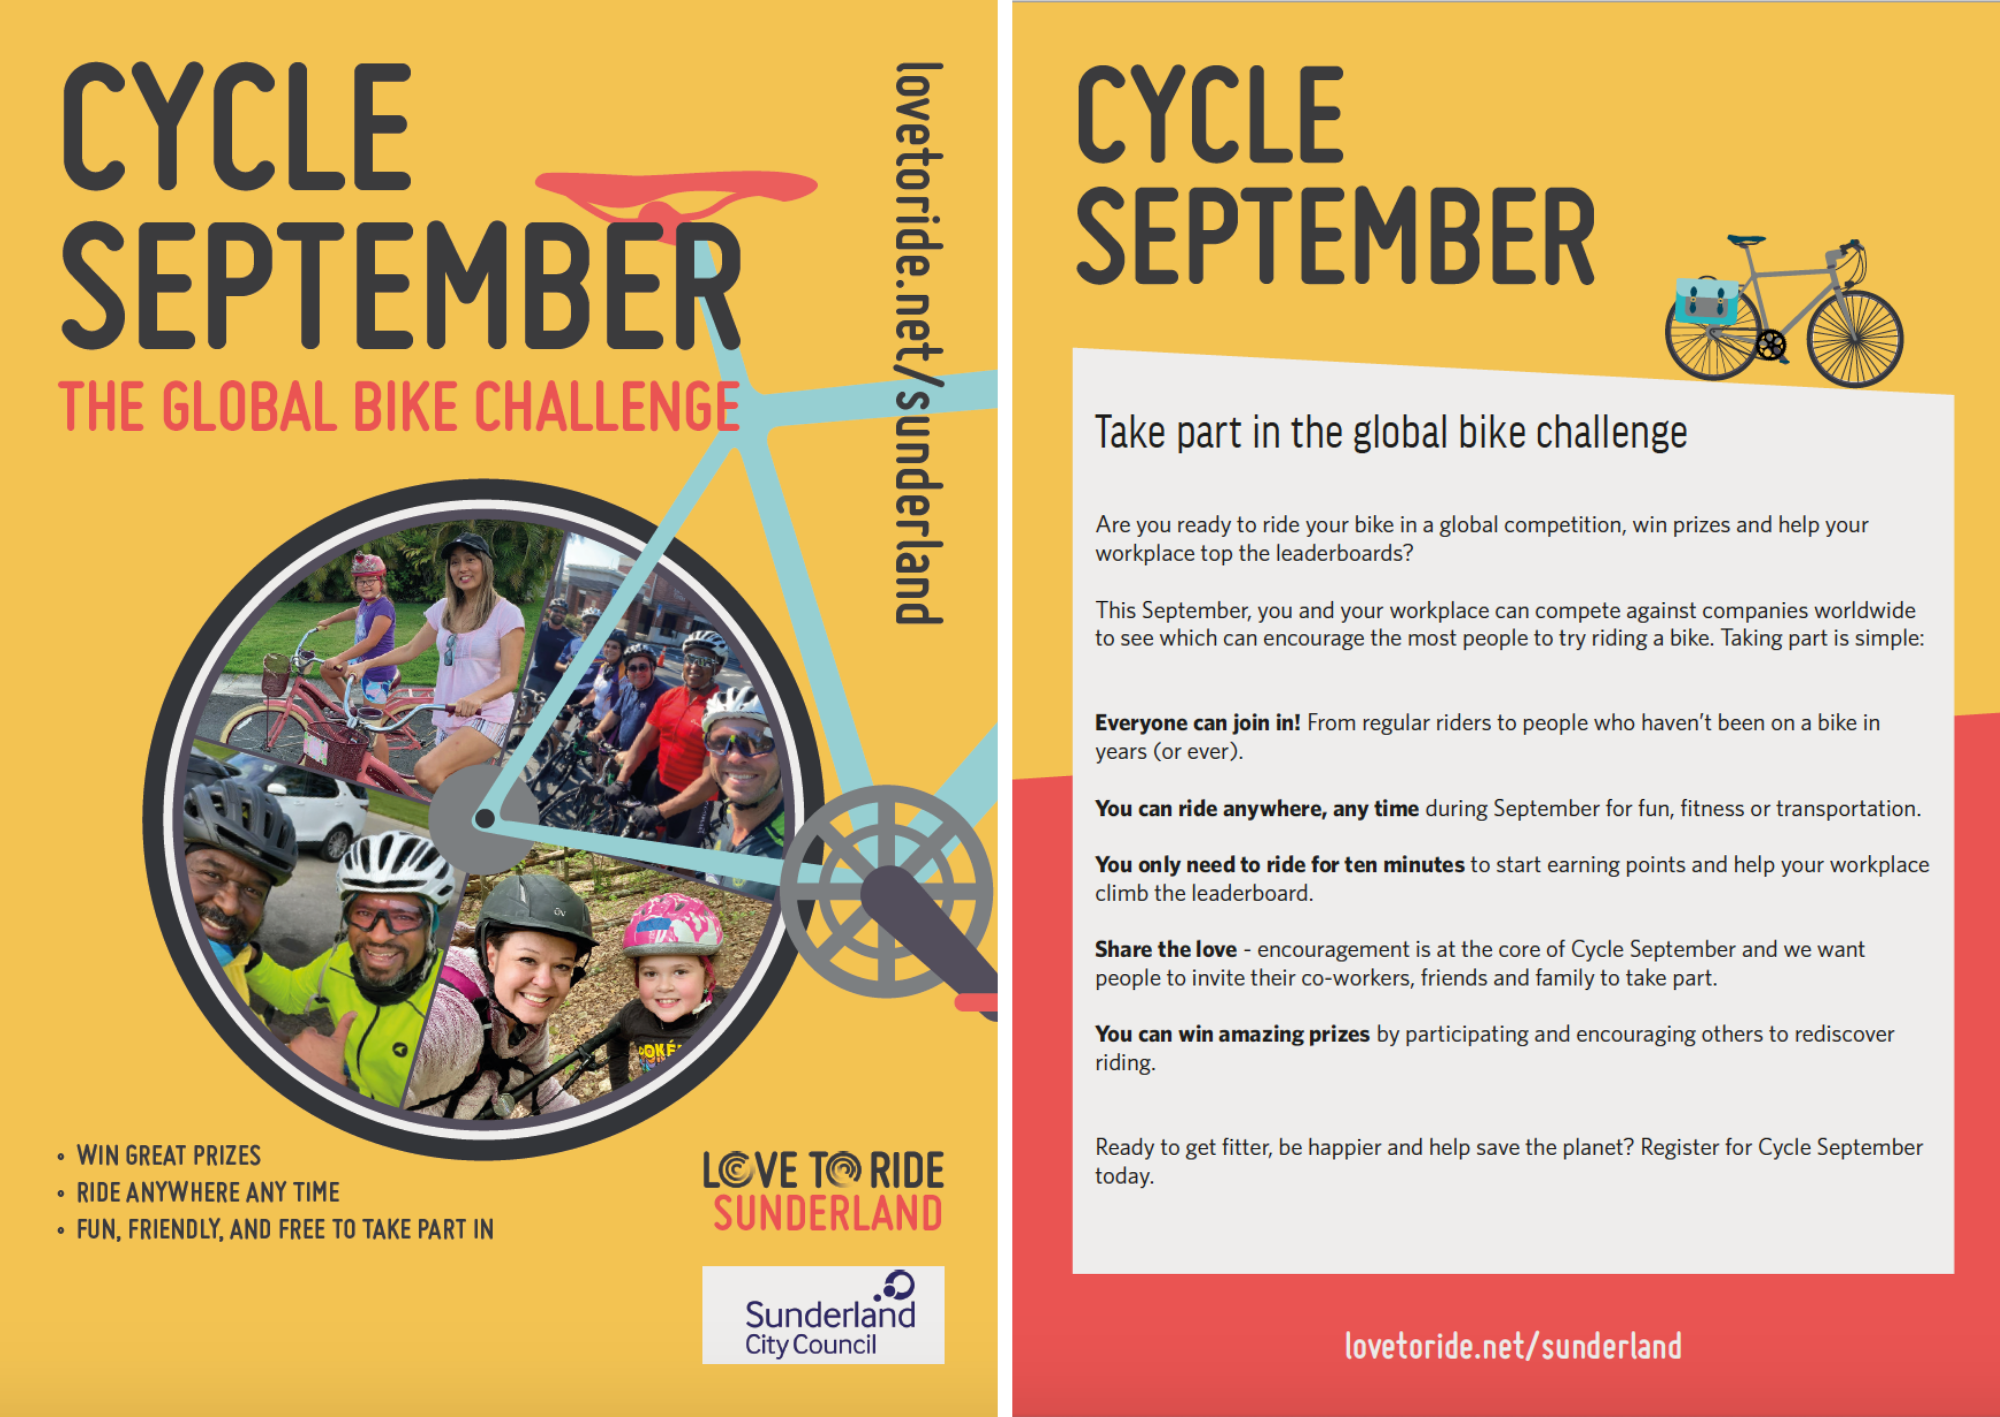 2-page spread of a Cycle September flyer